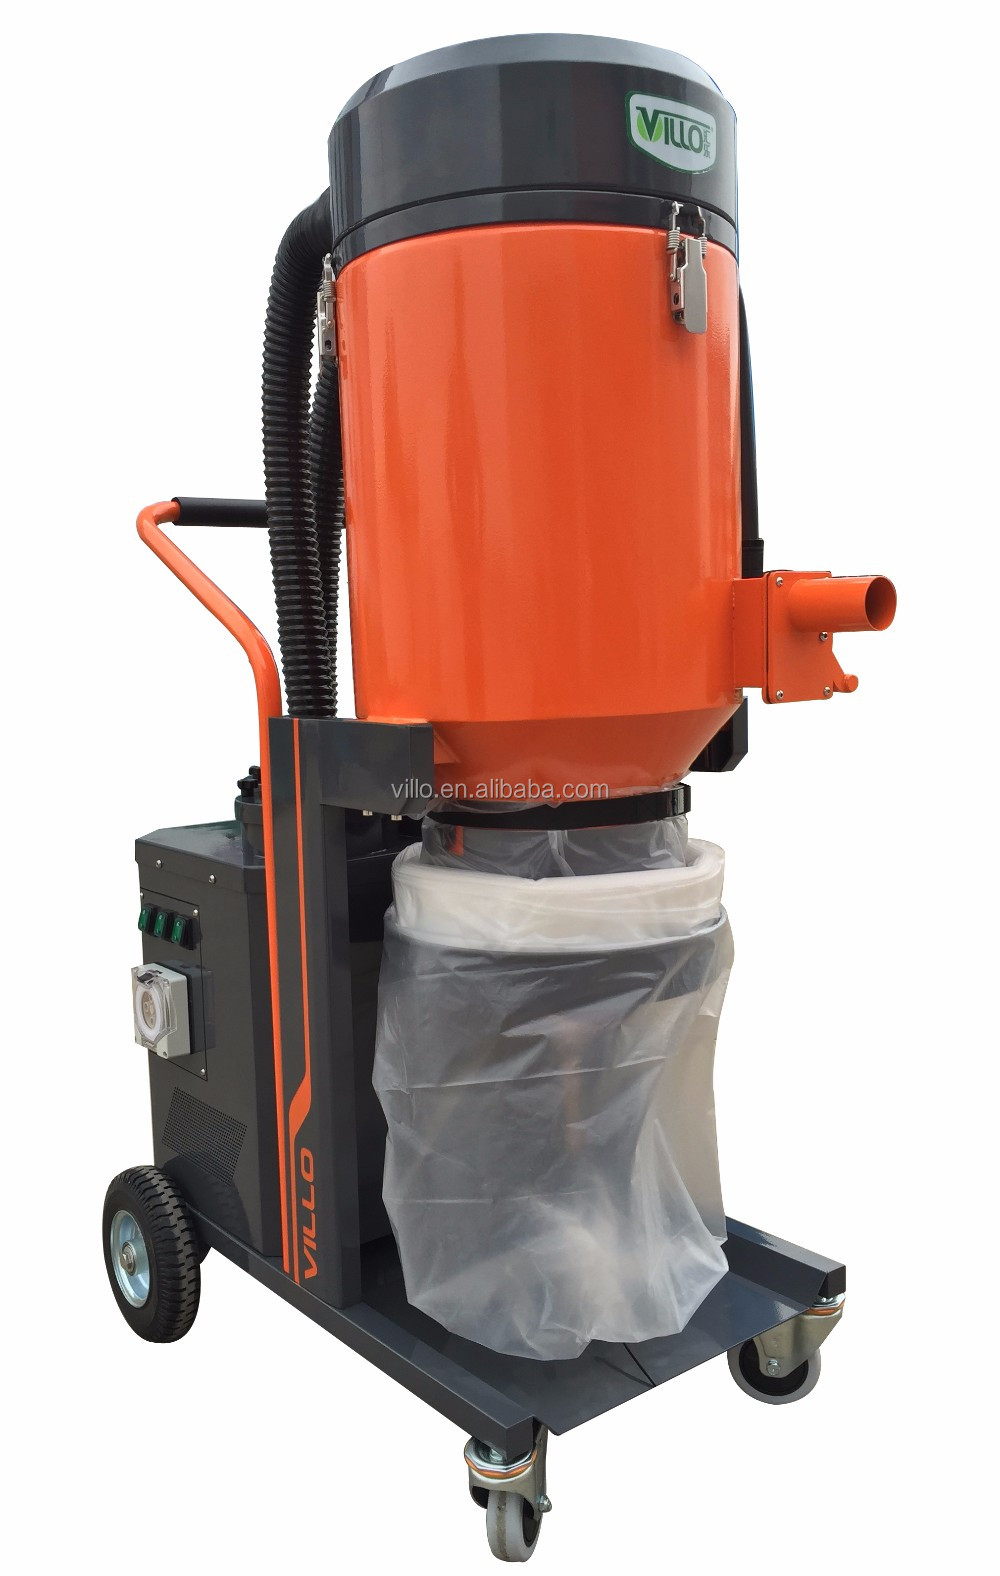 Single Phase Industrial Dust Extractors for Floor Grinding